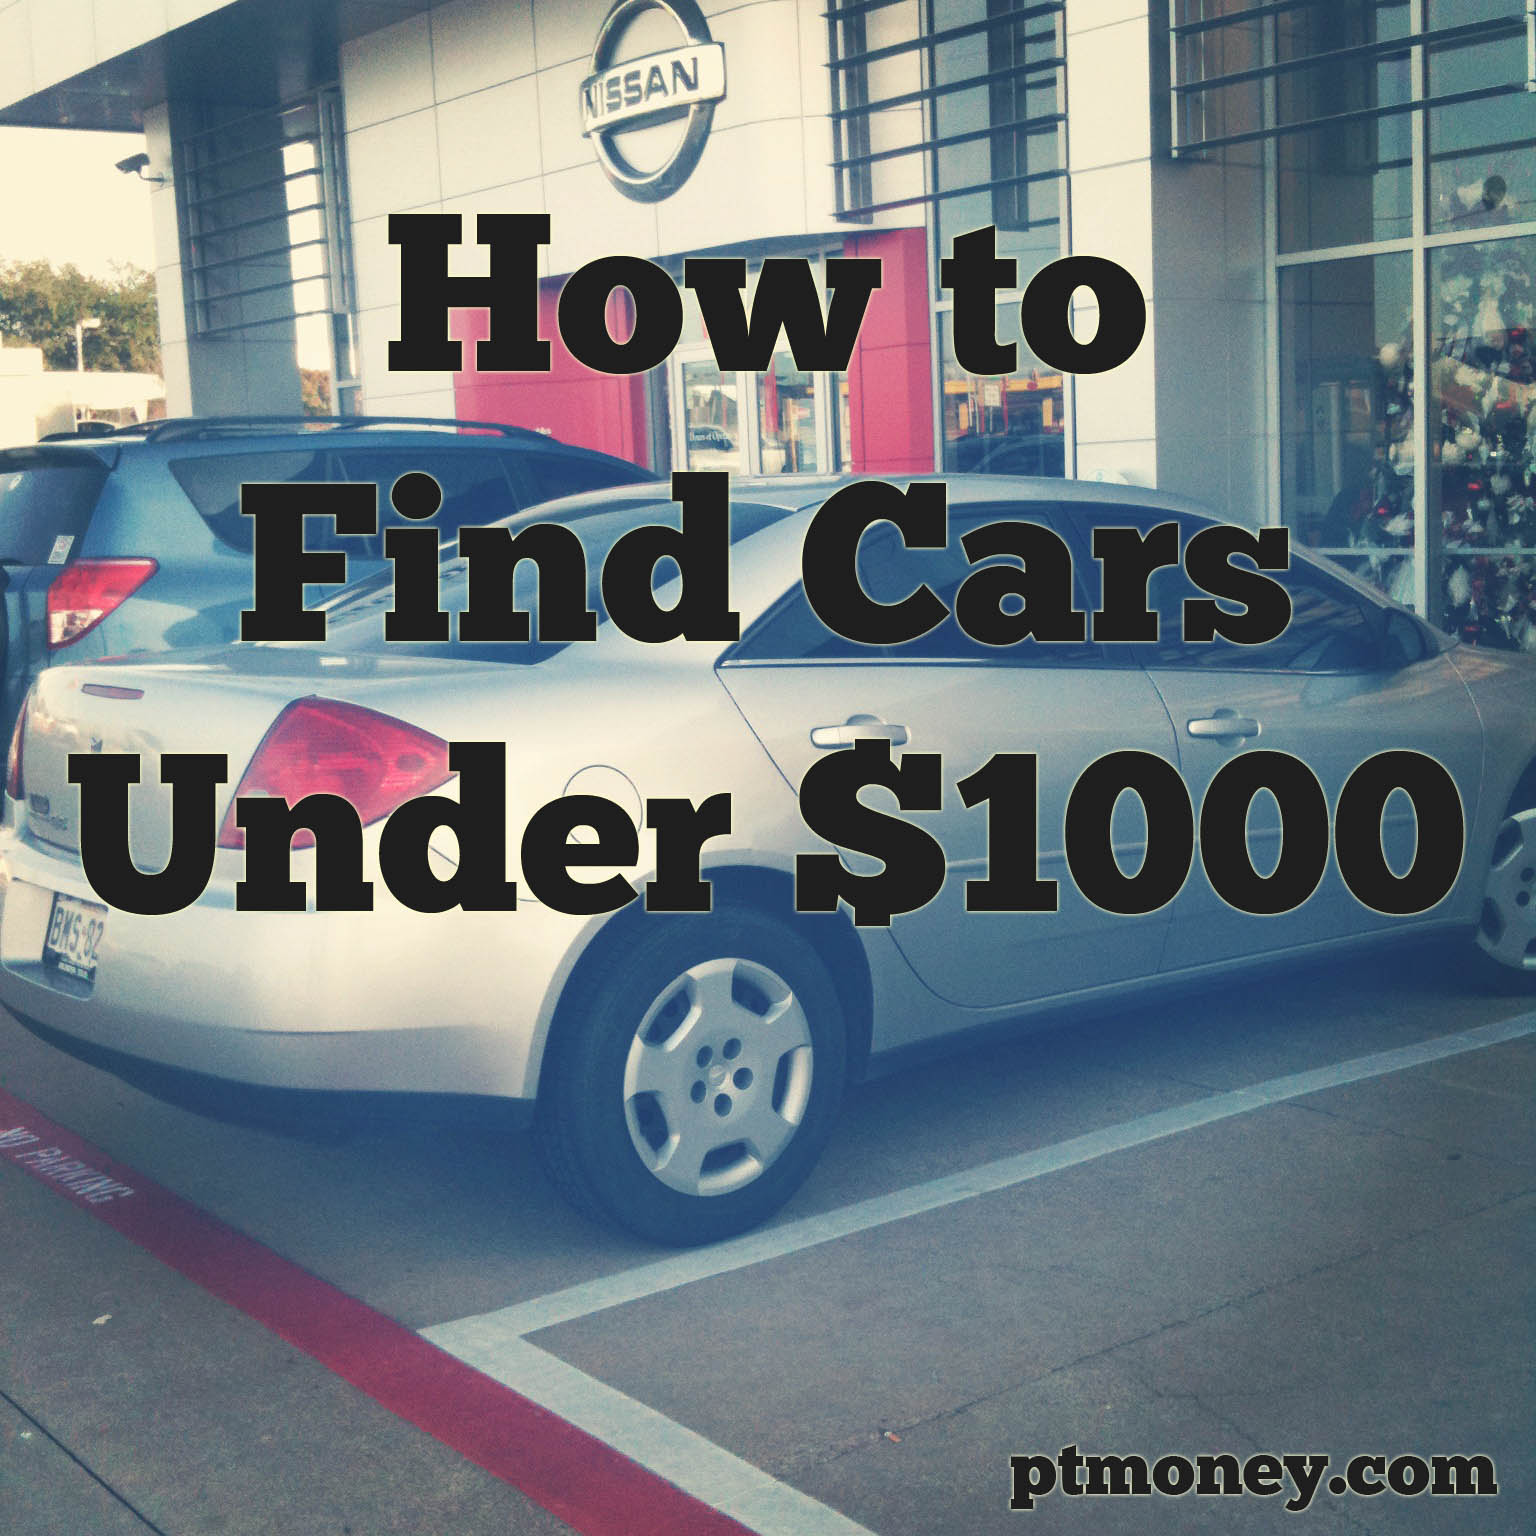 Cars for Sale Near Me by Owner Under 1000 New How to Find the Absolute Best Cars Under $1 000